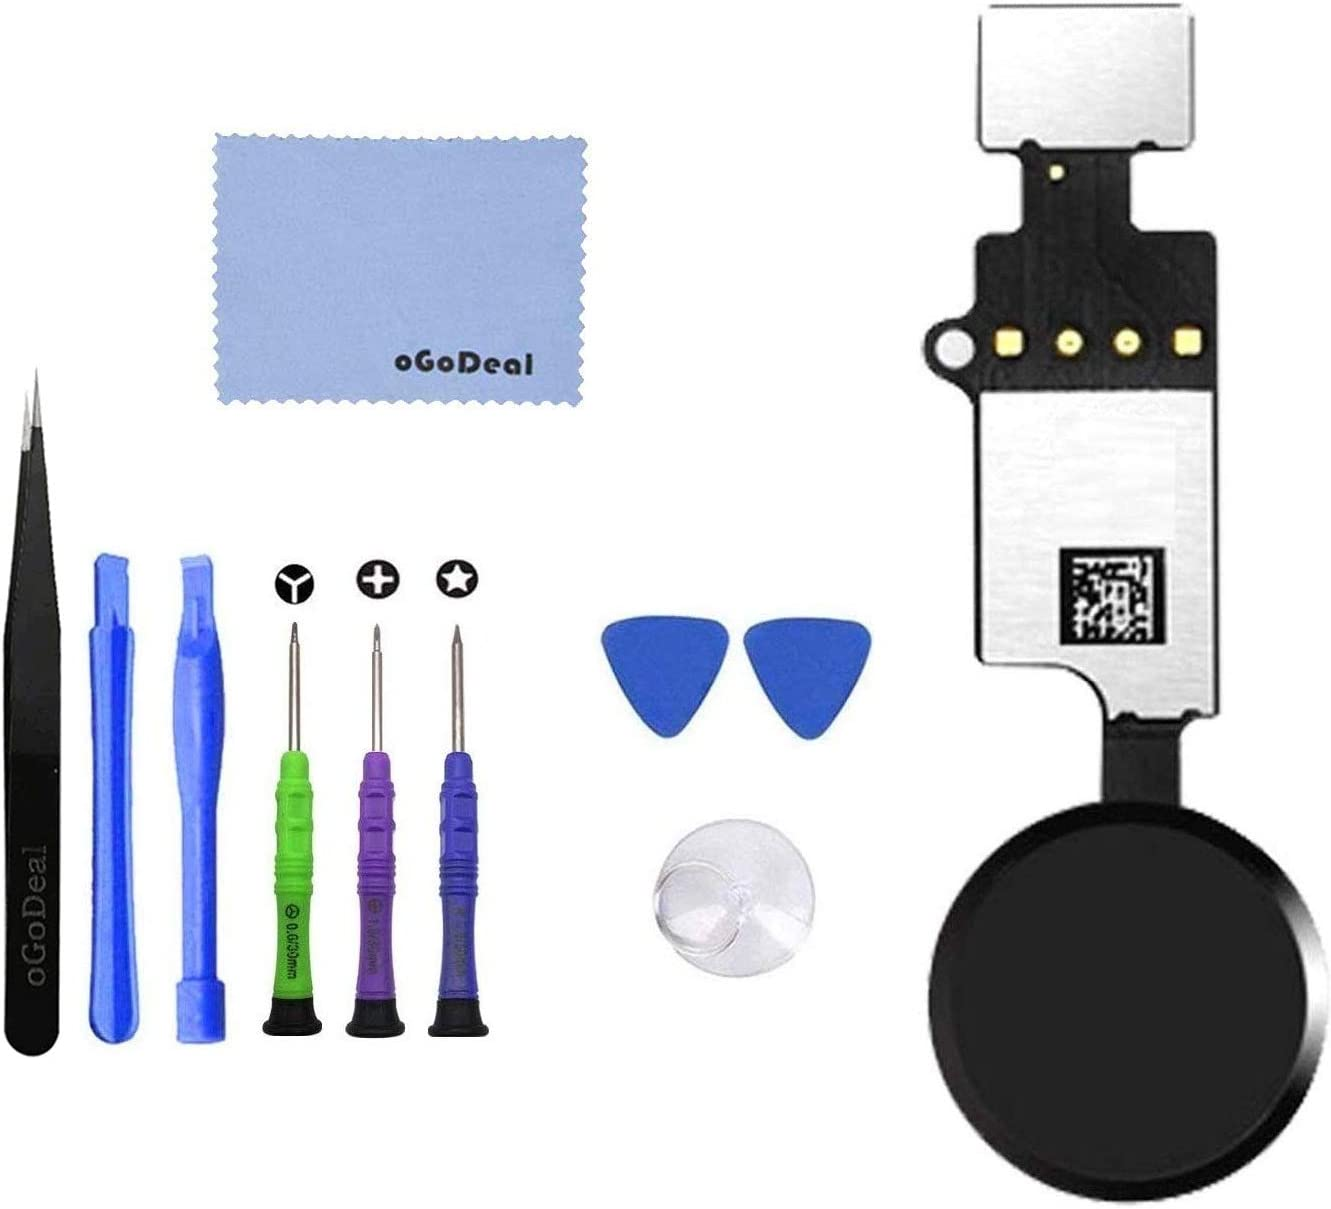 oGoDeal Home Button Replacement for iPhone 7 7 Plus 8 8 Plus Main Key Flex Cable Assembly with Return Function Without Touch ID-Black